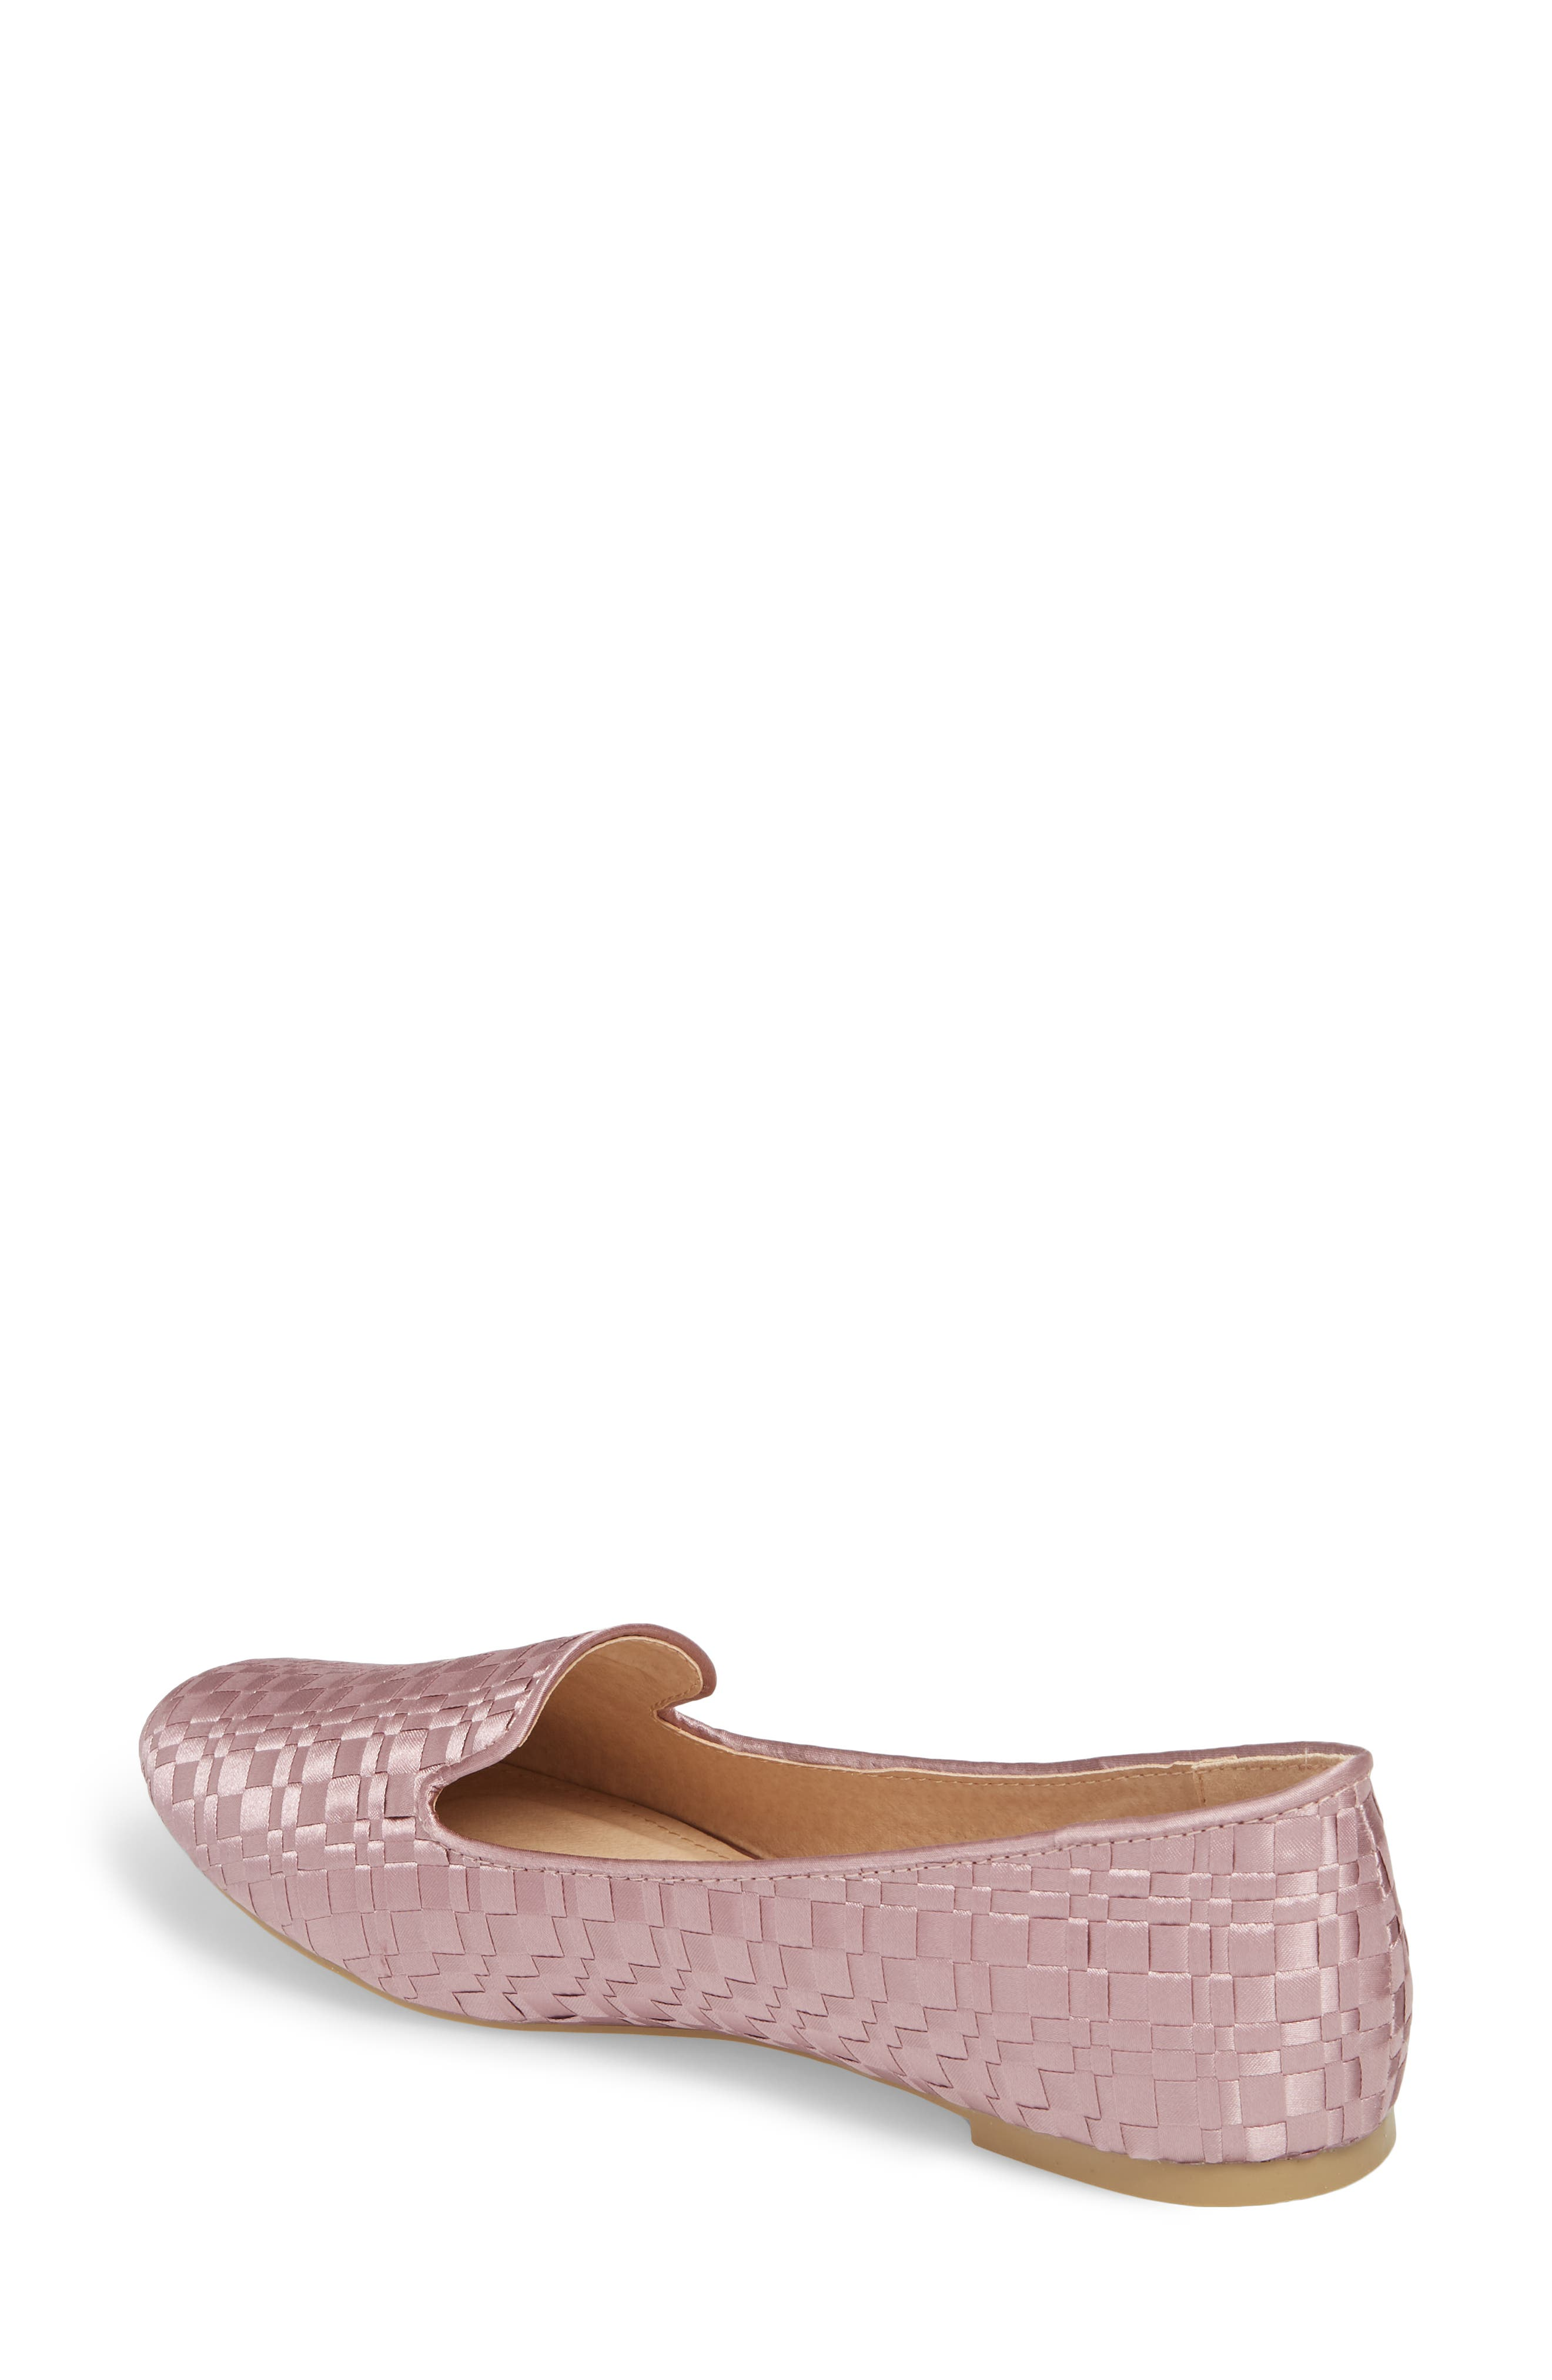 Sasha Textured Woven Loafer,                             Alternate thumbnail 2, color,                             Pink